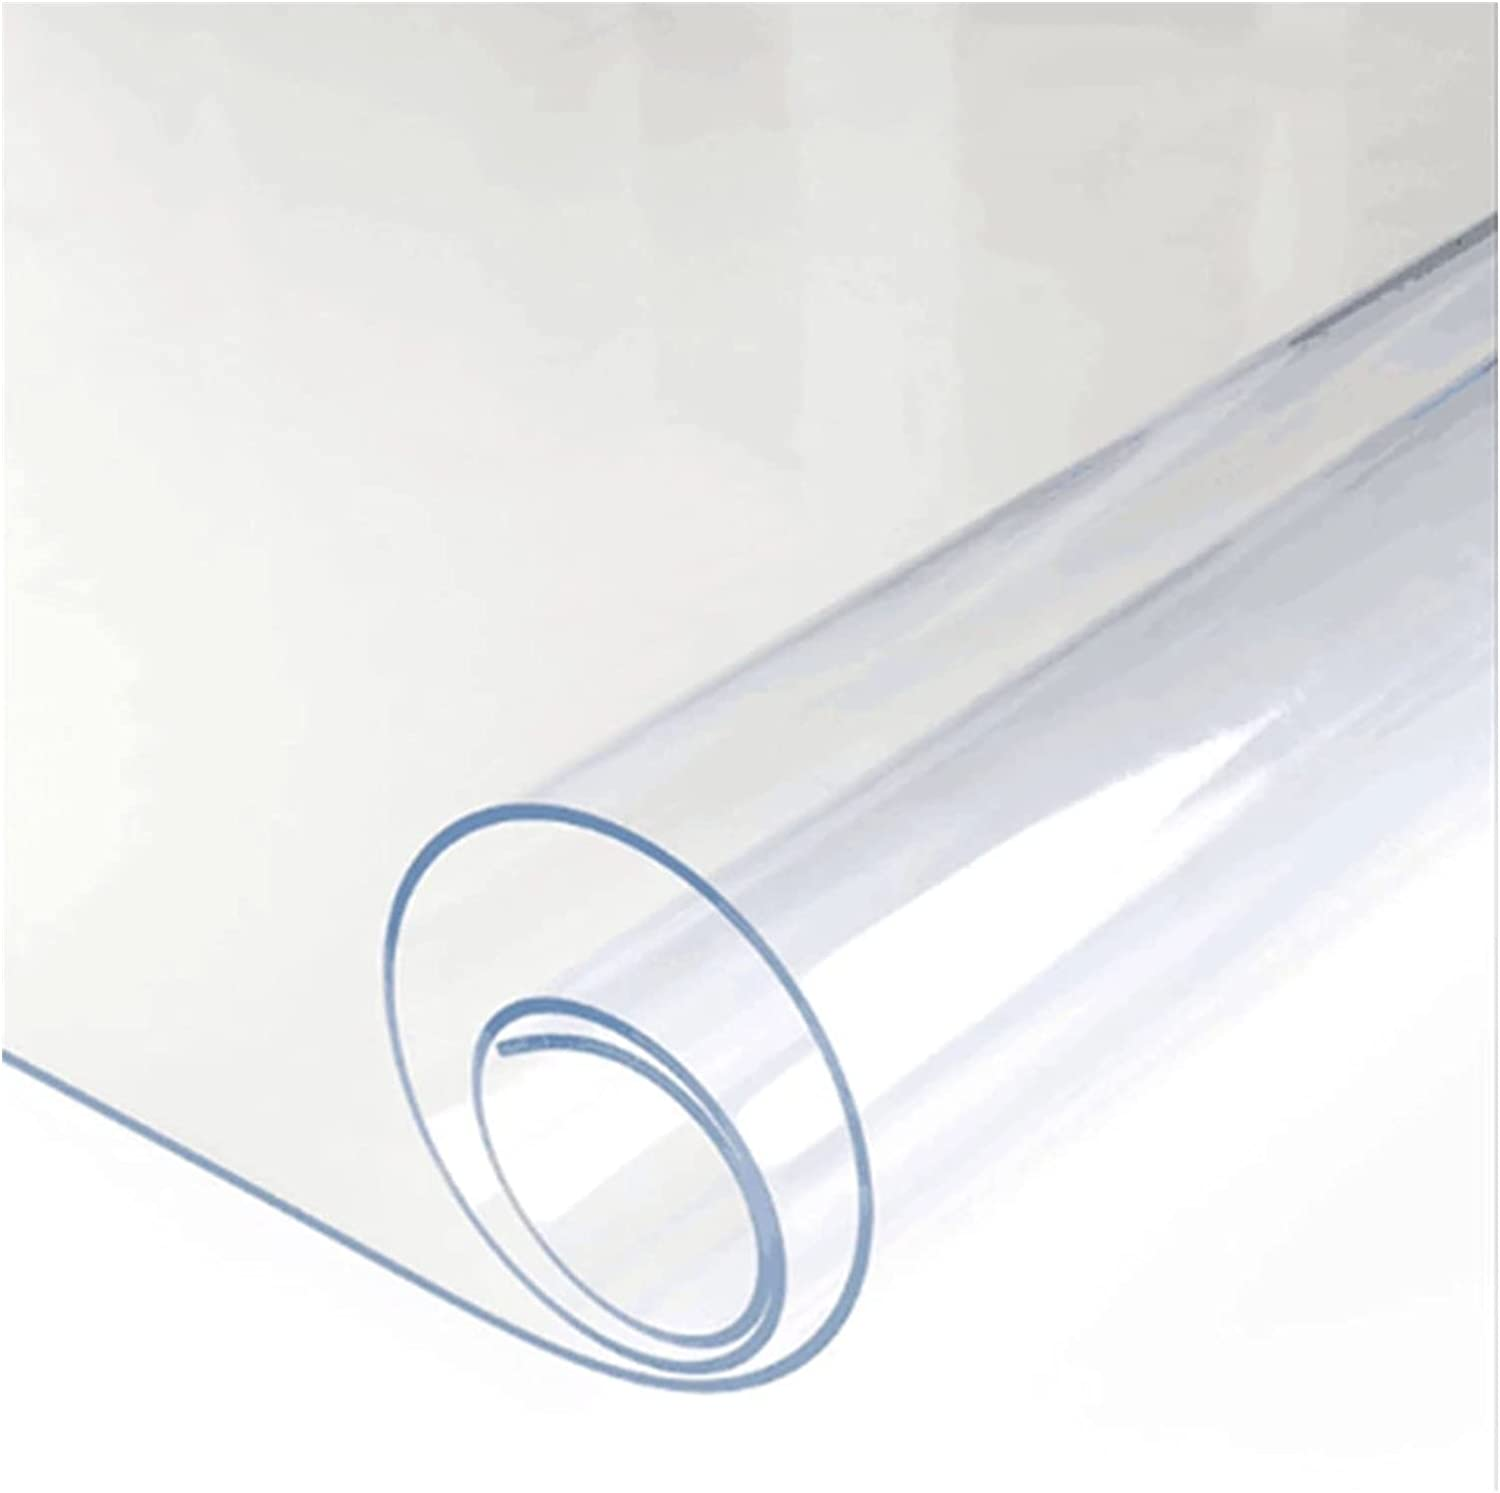 Max 68% OFF AWSAD Quality inspection Waterproof PVC Protective Table Mat 1.5mm Transparent Pad